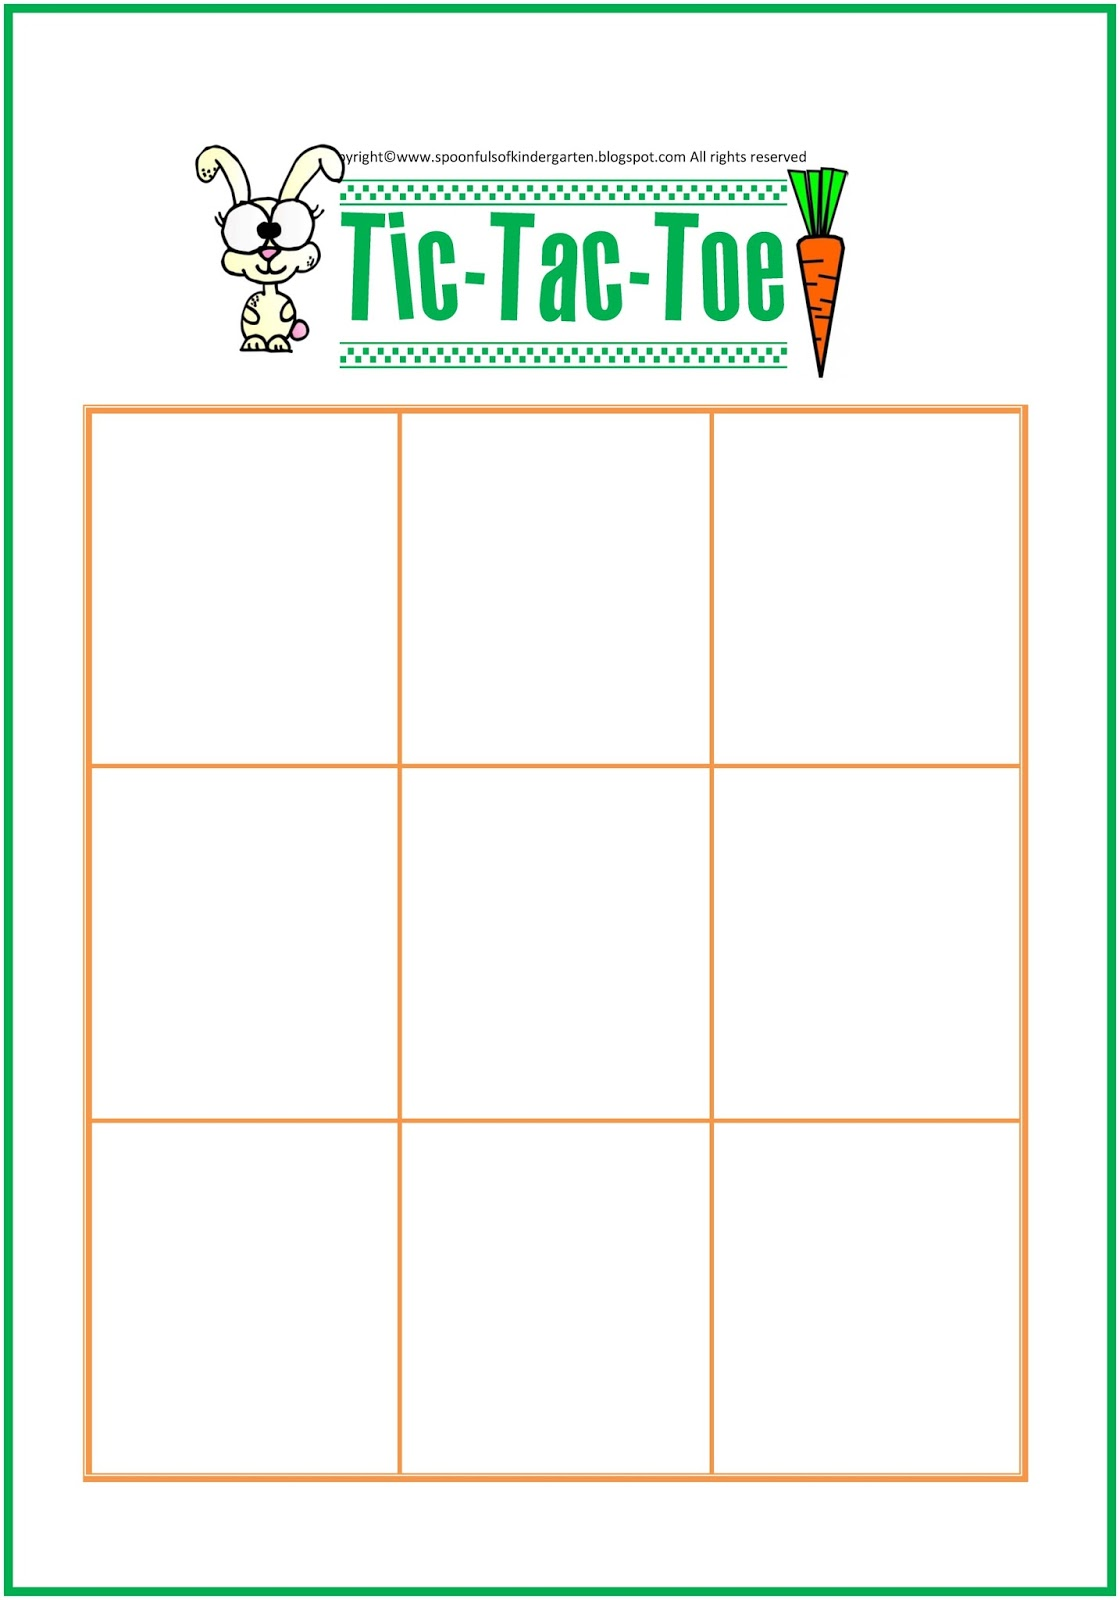 Insane image with tic tac toe board printable